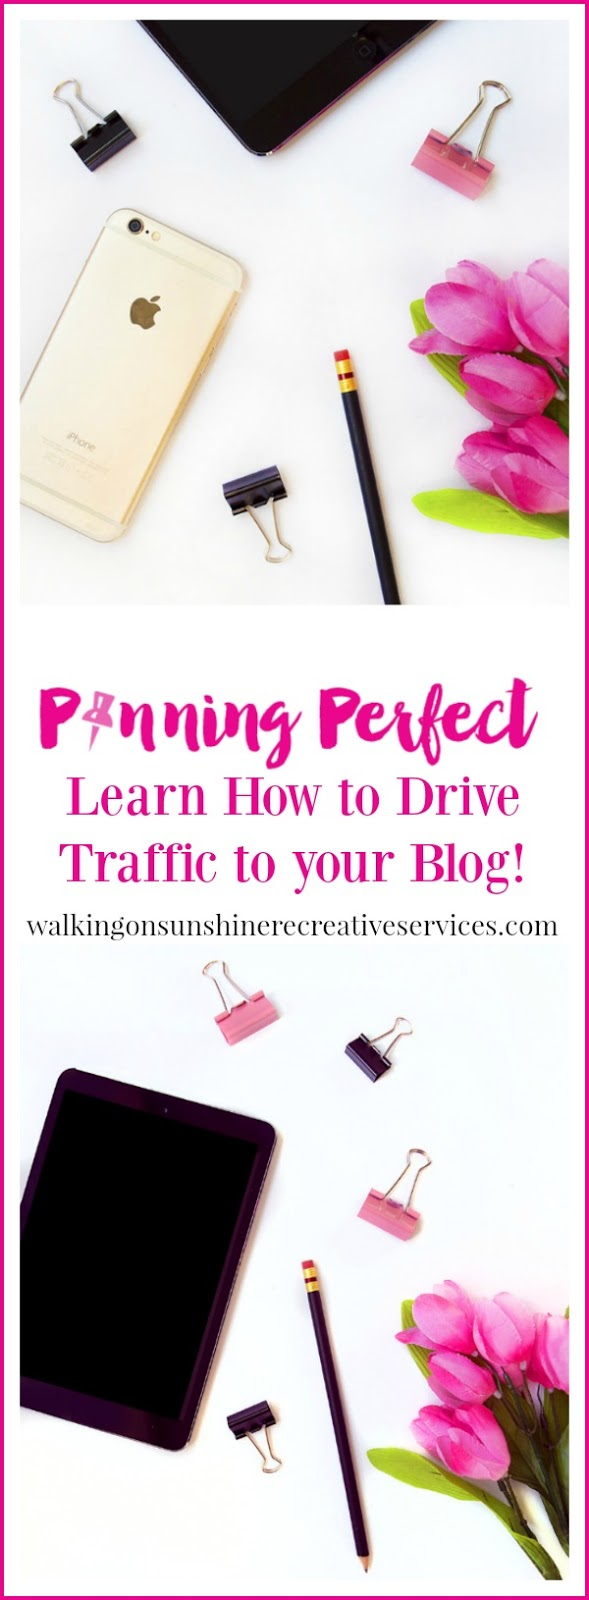 Pinning Perfect - The BEST Pinterest Course featured on Walking on Sunshine.